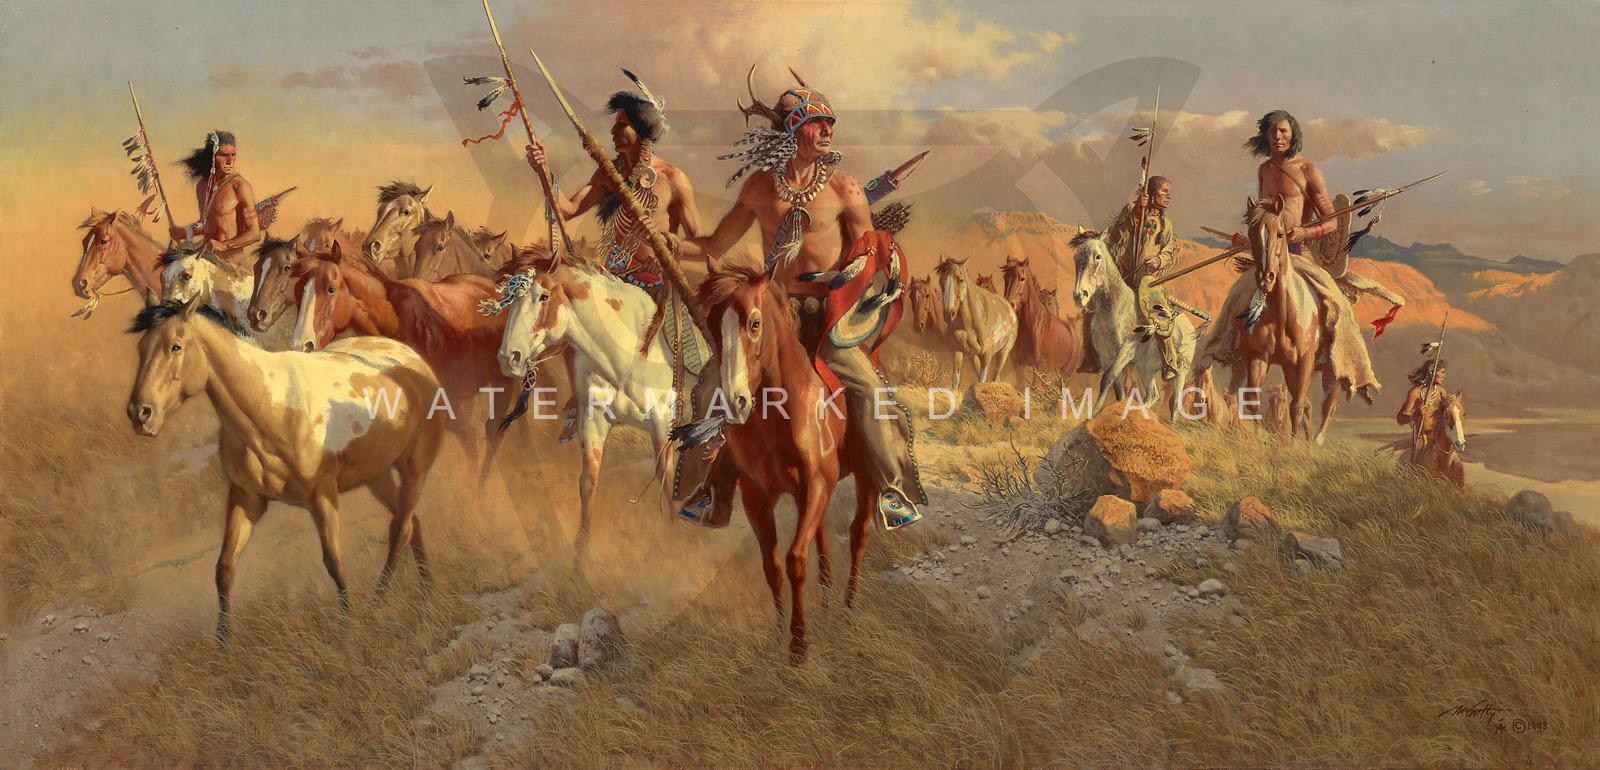 The Raiders By Frank C Mccarthy Masterwork Giclee Canvas Edition